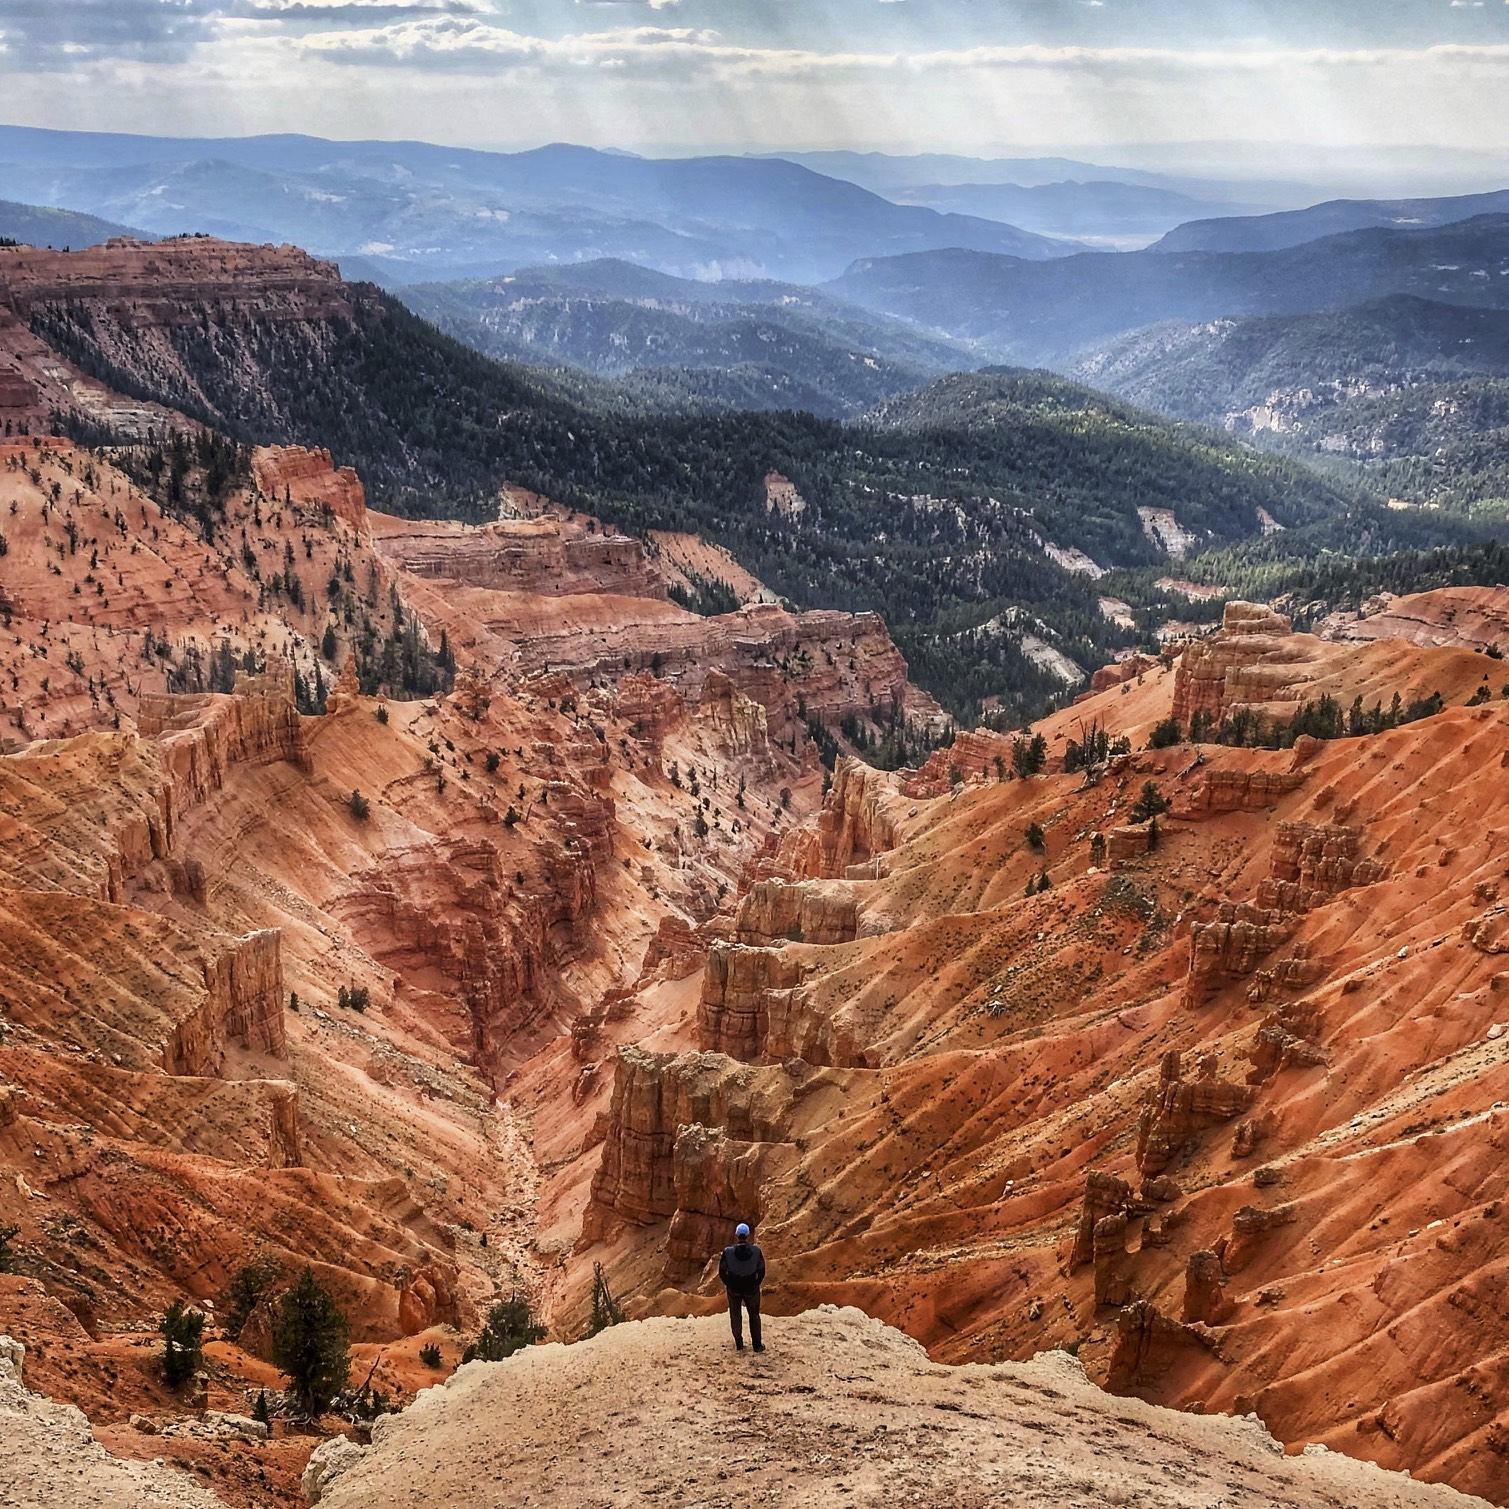 Looking down at the Cedar Breaks Canyon